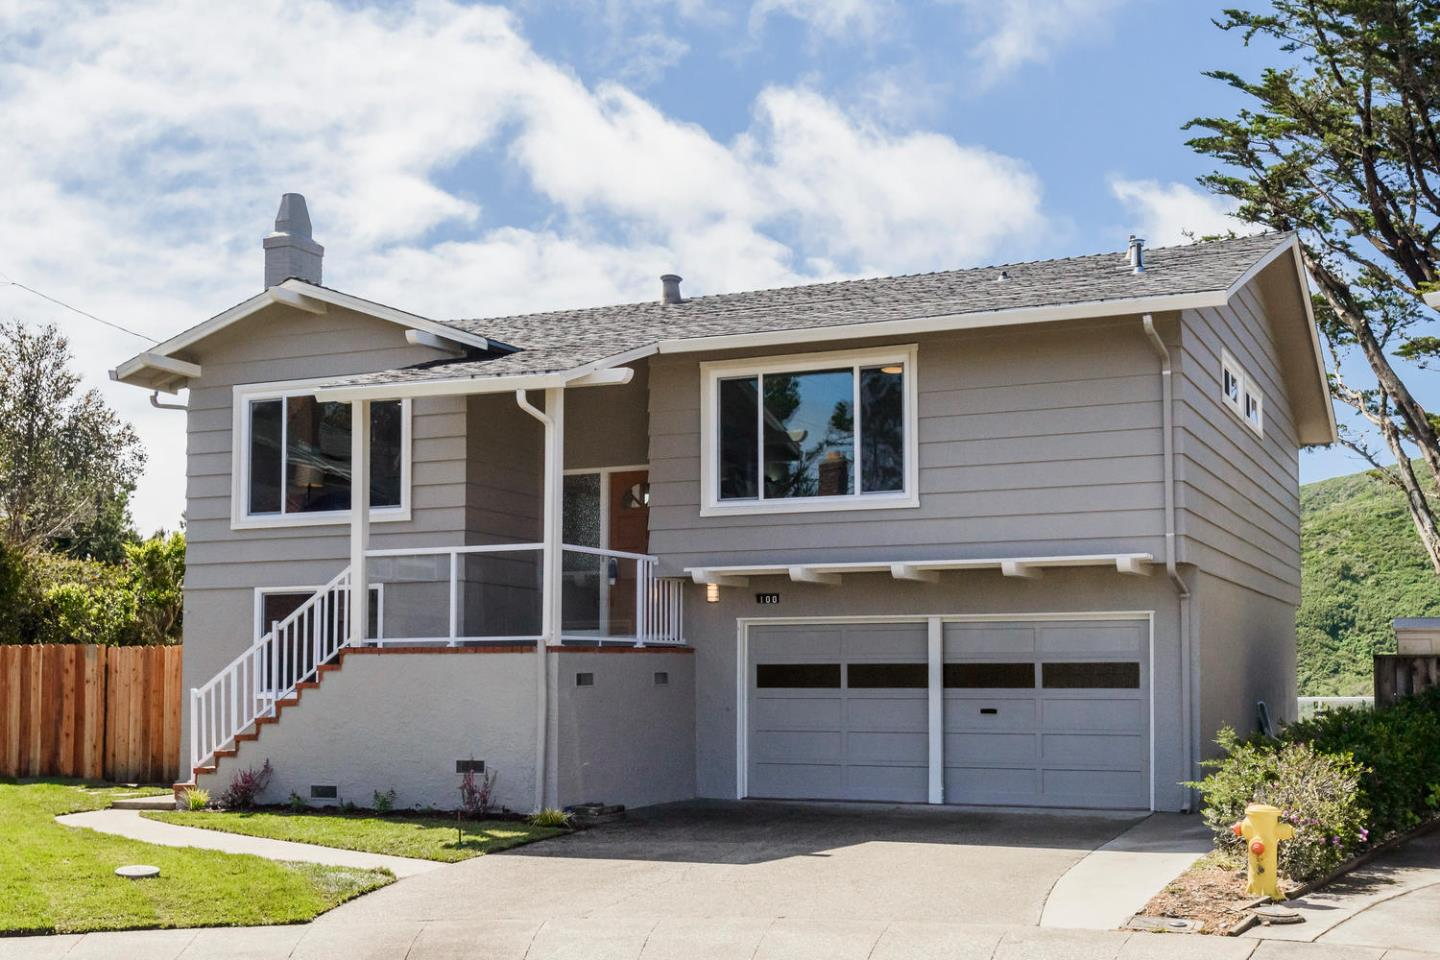 Additional photo for property listing at 100 Merced Dr  SAN BRUNO, CALIFORNIA 94066